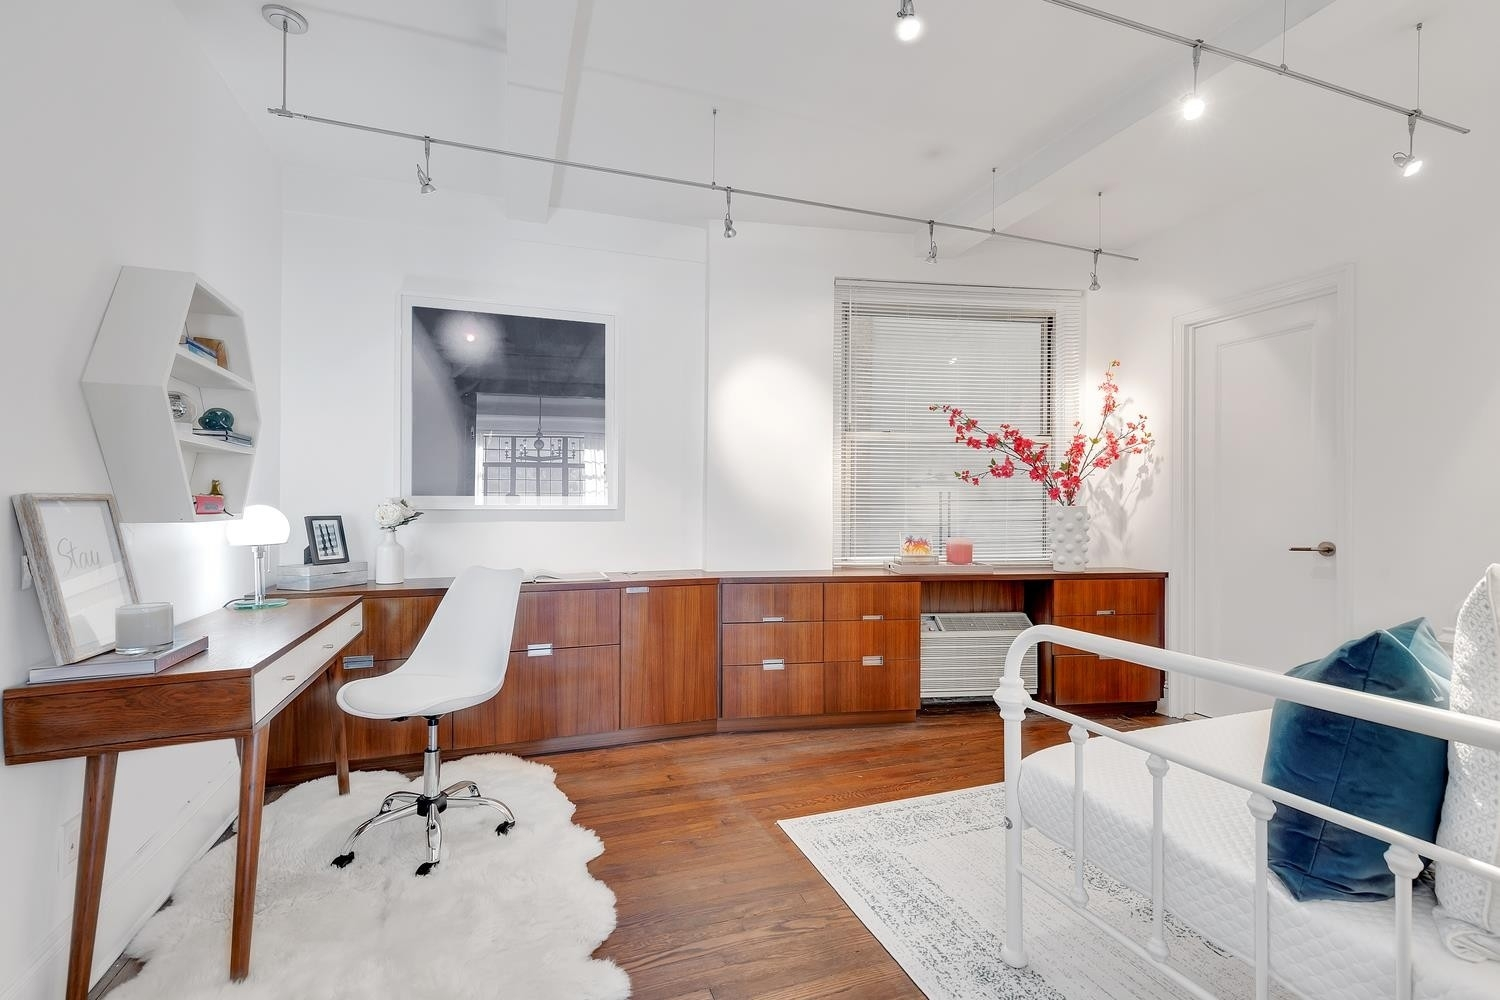 10. Co-op Properties for Sale at GRAMERCY OWNERS LTD, 44 GRAMERCY PARK N, 4C Gramercy Park, New York, NY 10010